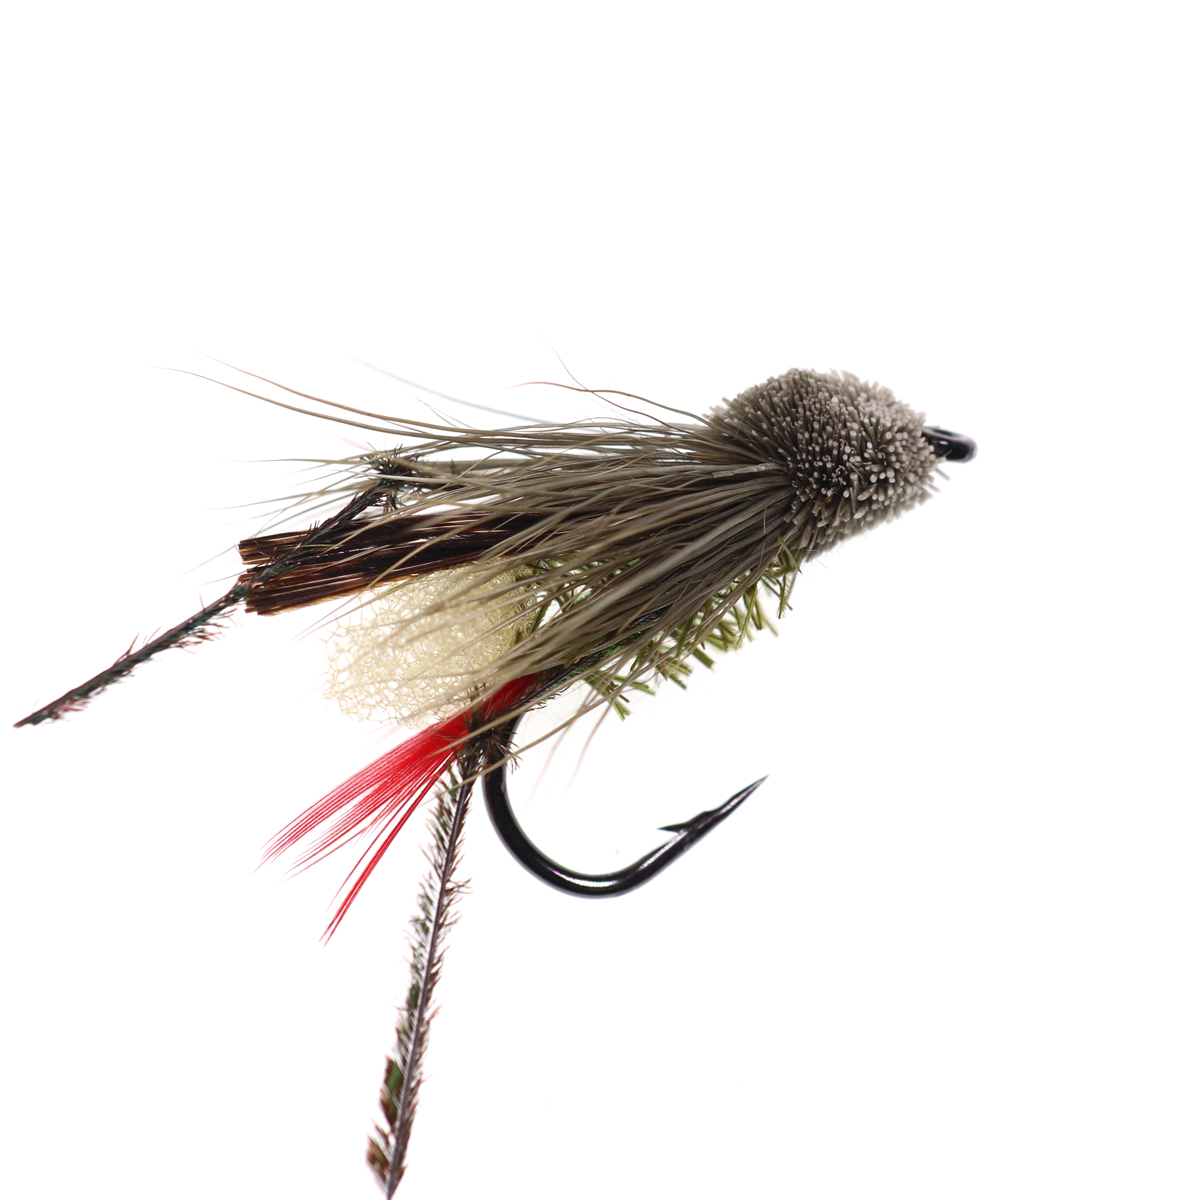 5PCS #10 Trout Fishing Fly Grass Hopper Fly terrestrial Hopper Fly Floating Bass Crappie Bug Bait Artificial Lure 19